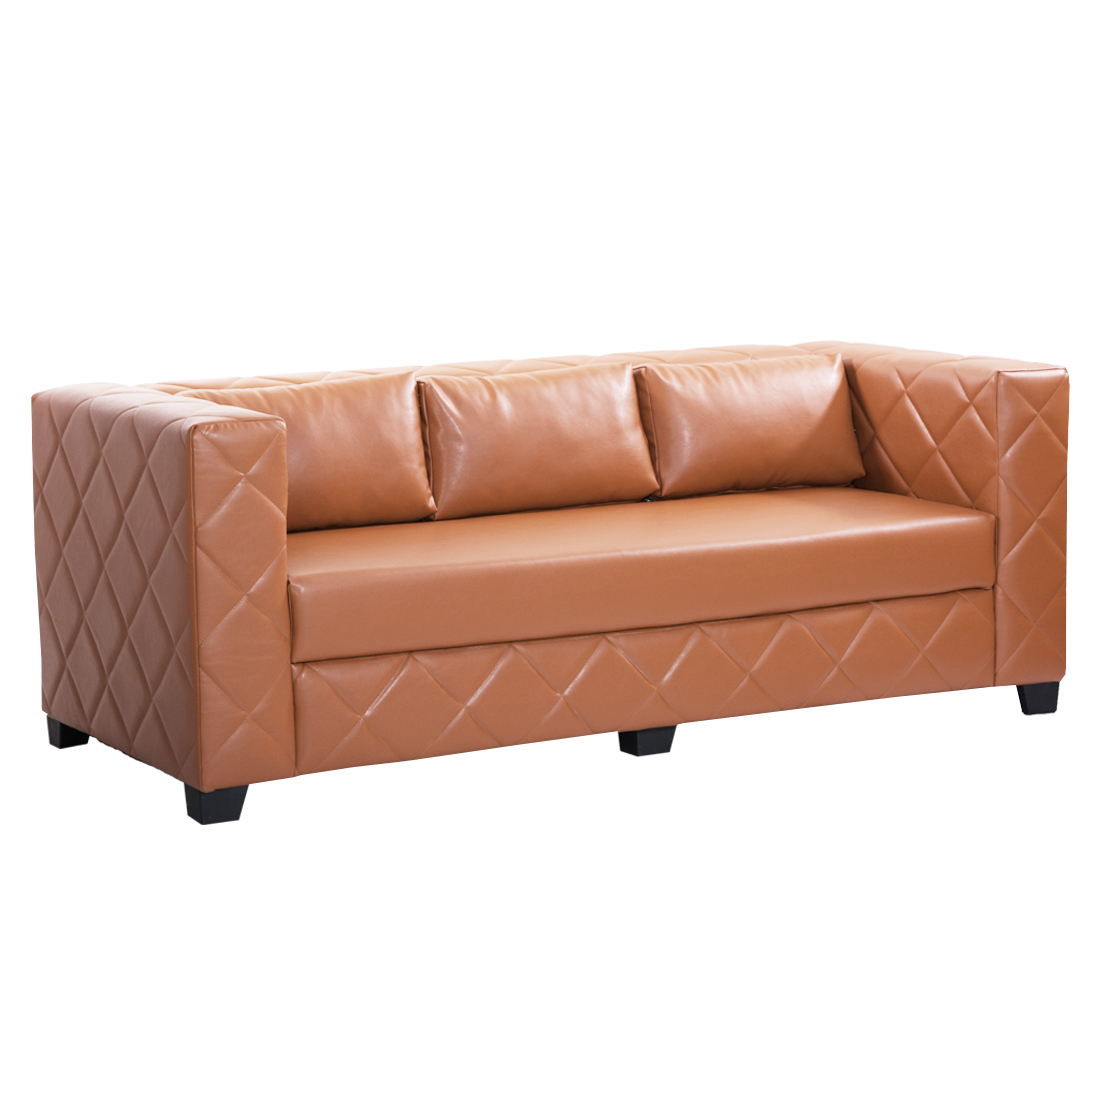 Bharat Lifestyle Martin Leatherette 3 Seater Sofa Color Rust Brown